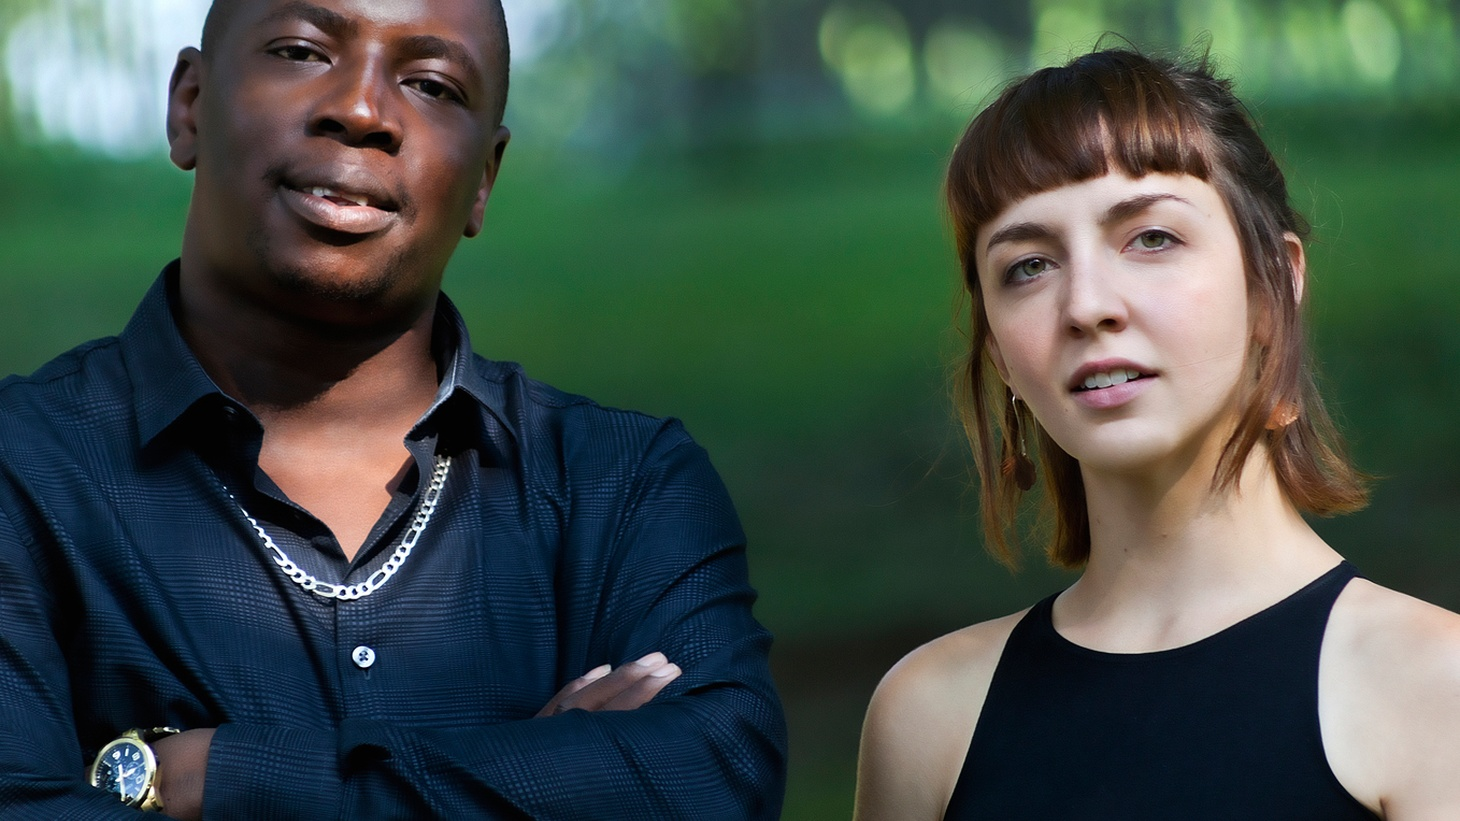 On a recent visit to NYC, Malian guitarist Vieux Farka Toure set up an impromptu studio session with American singer Julia Easterlin. The meeting was magical and a collaboration ensued.